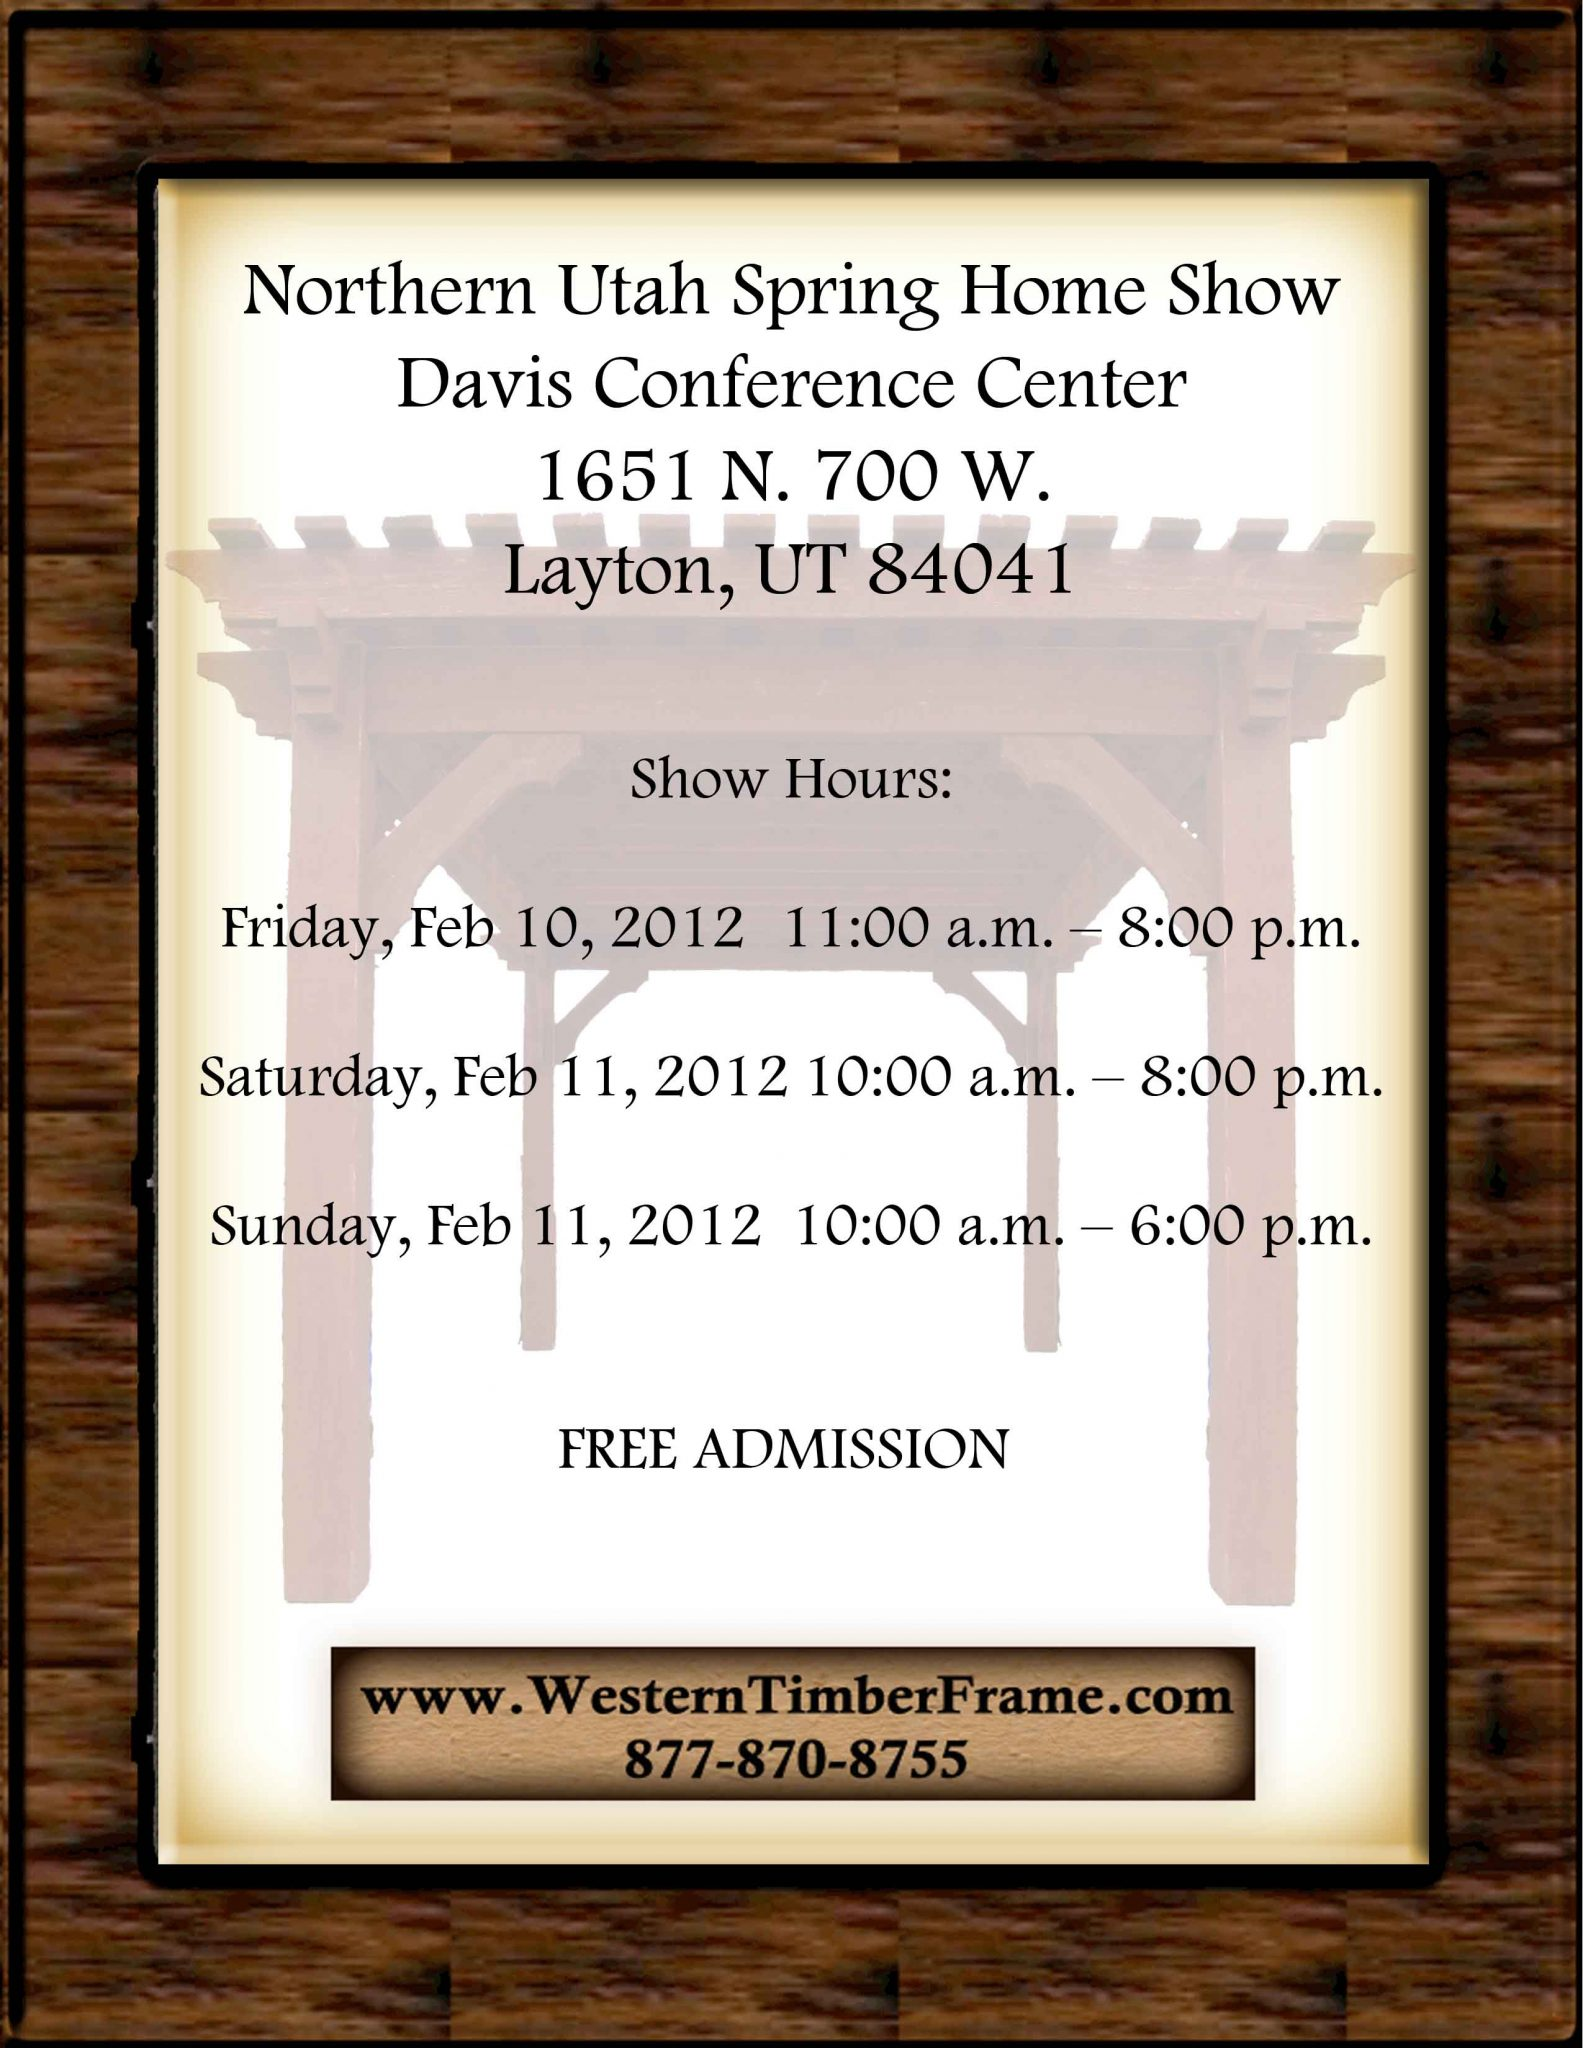 Northern Utah Spring Home Show Western Timber Frame